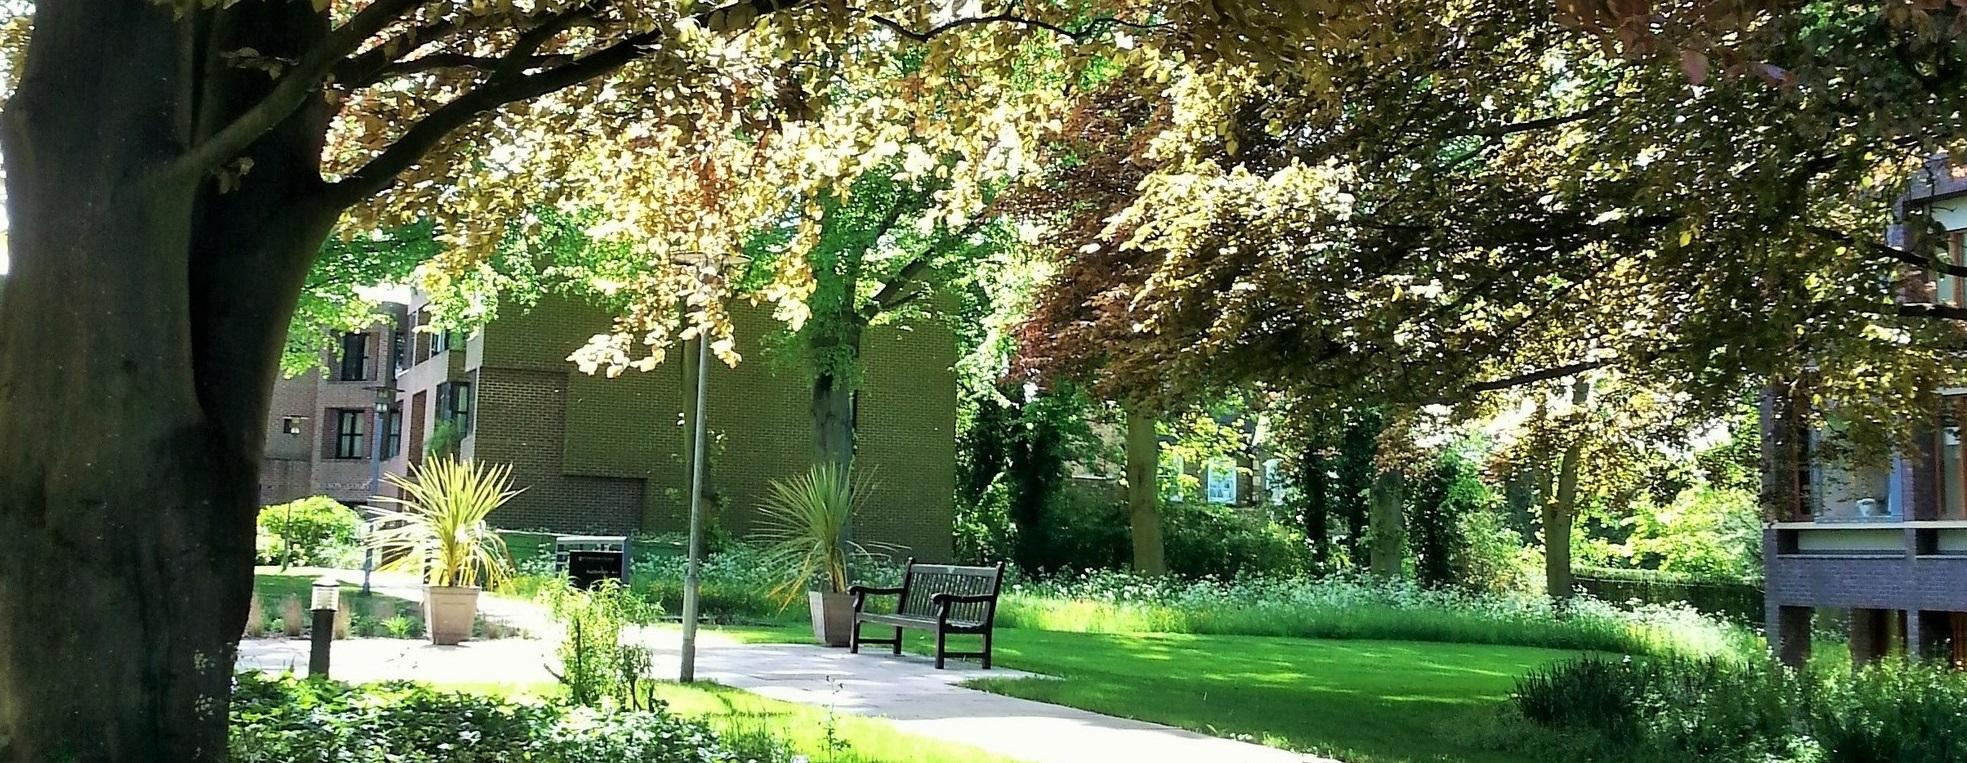 Gardens at Fitzwilliam